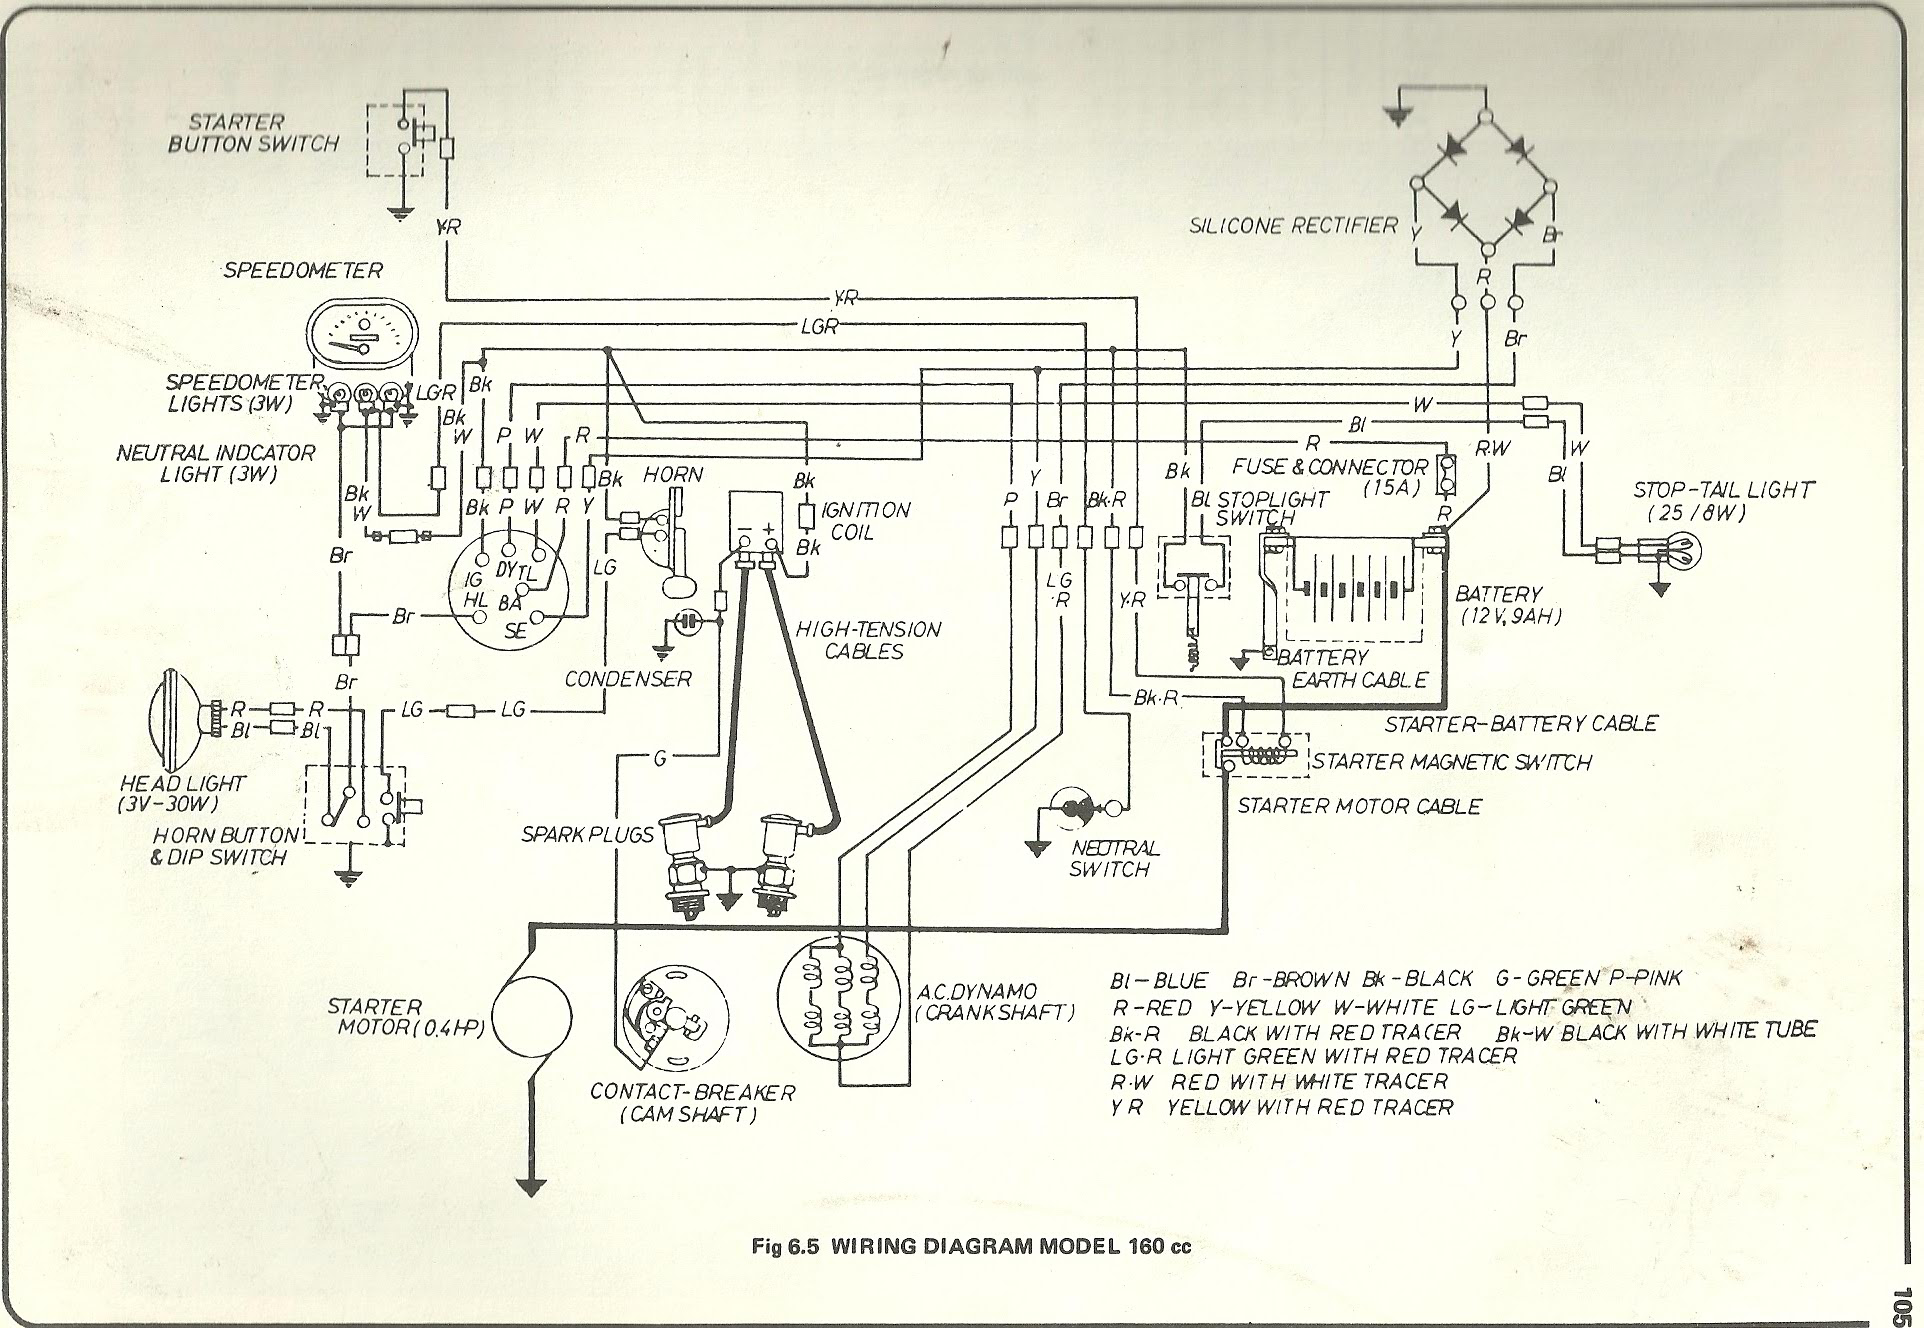 Bfa88 1971 Honda Cl70 Wiring Diagram Wiring Resources